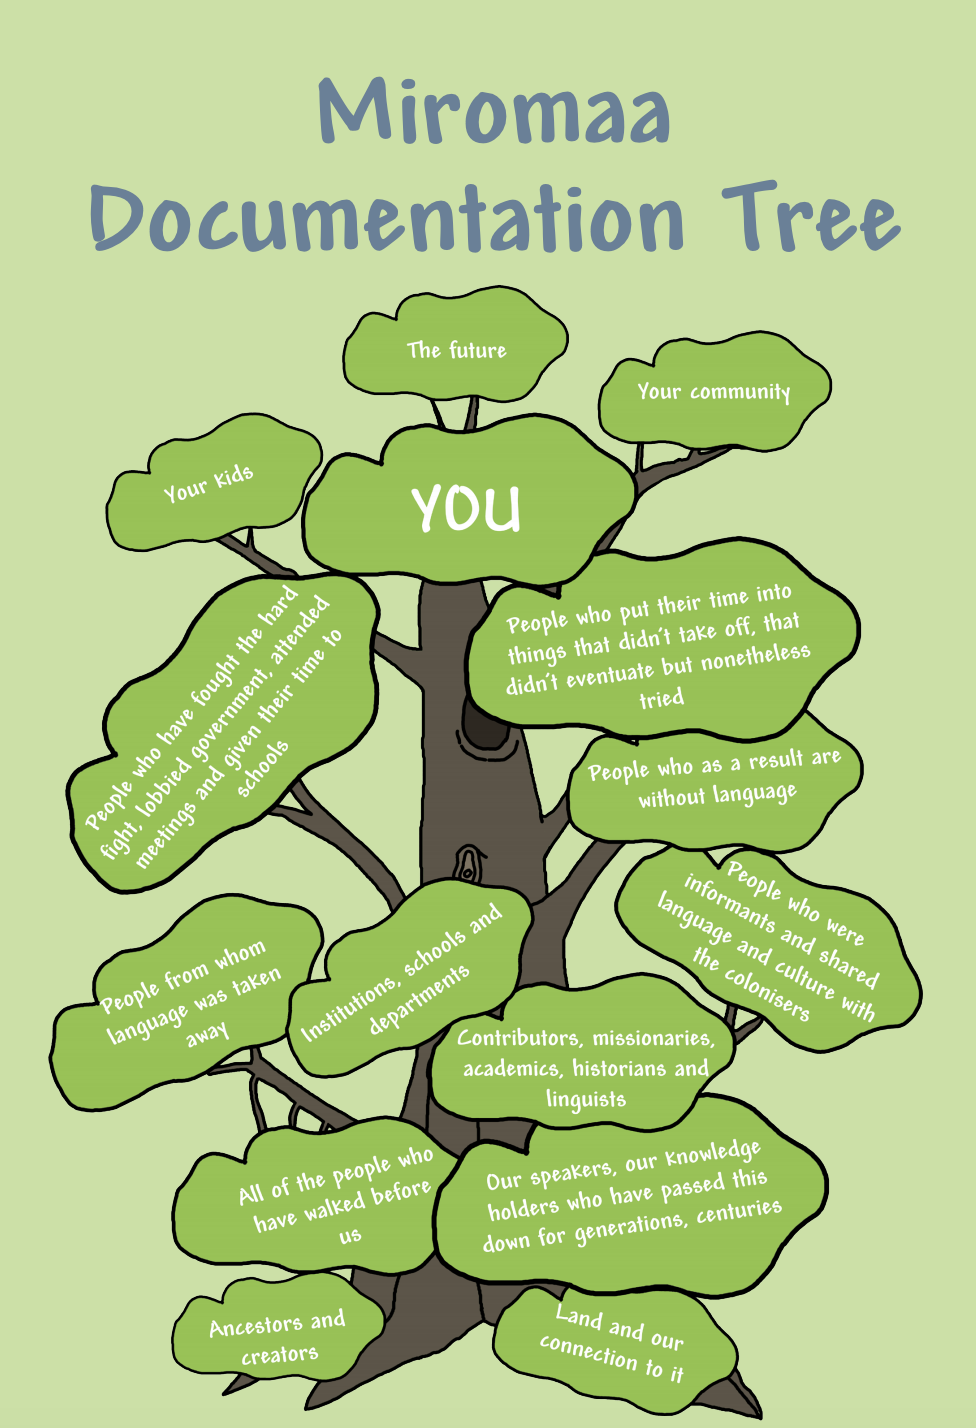 1 Documentation tree